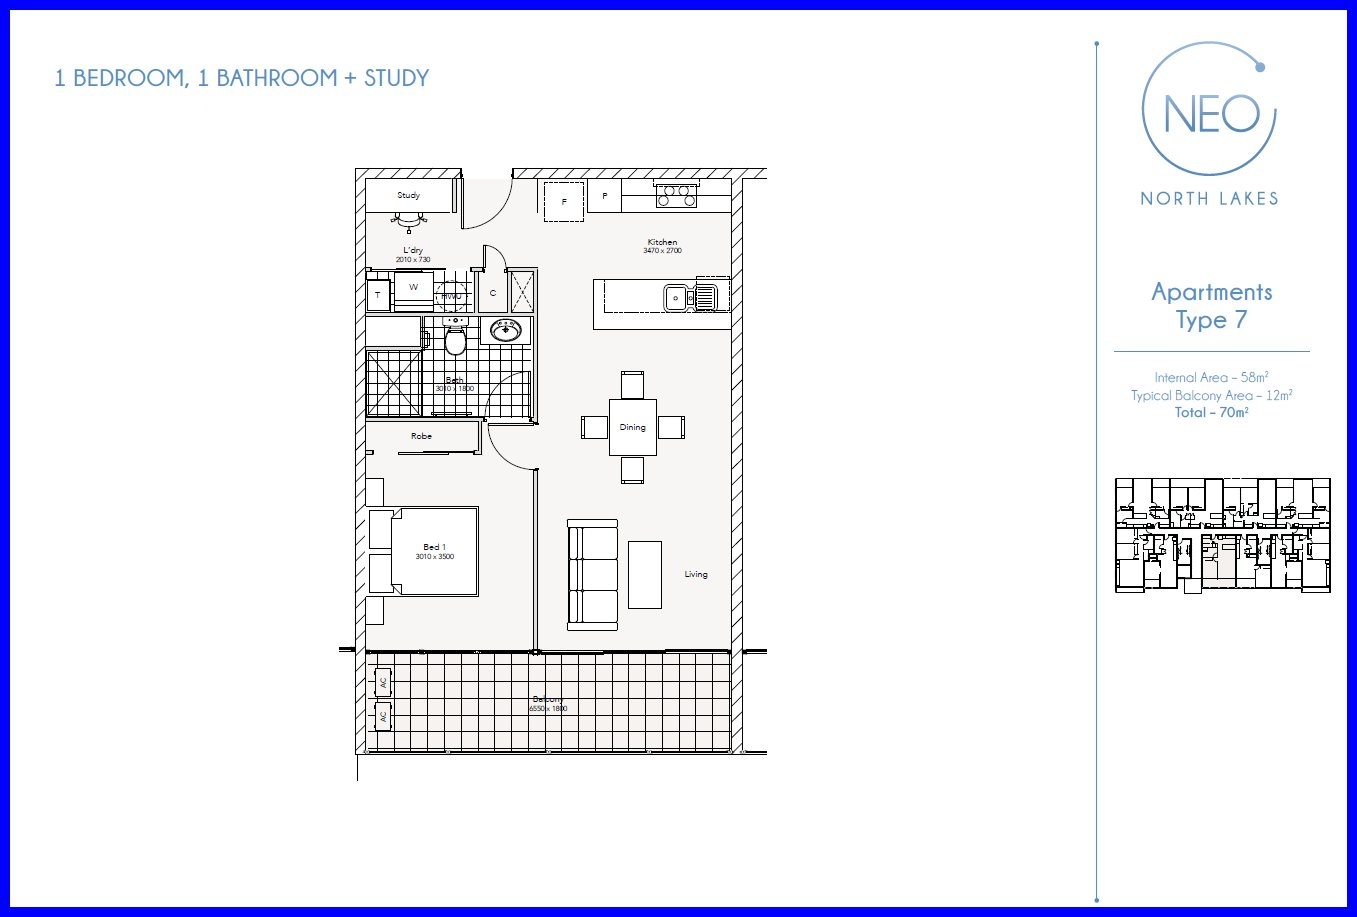 One Bedroom Apartment Floor Plans Neo North Lakes Apartments Northlake Units